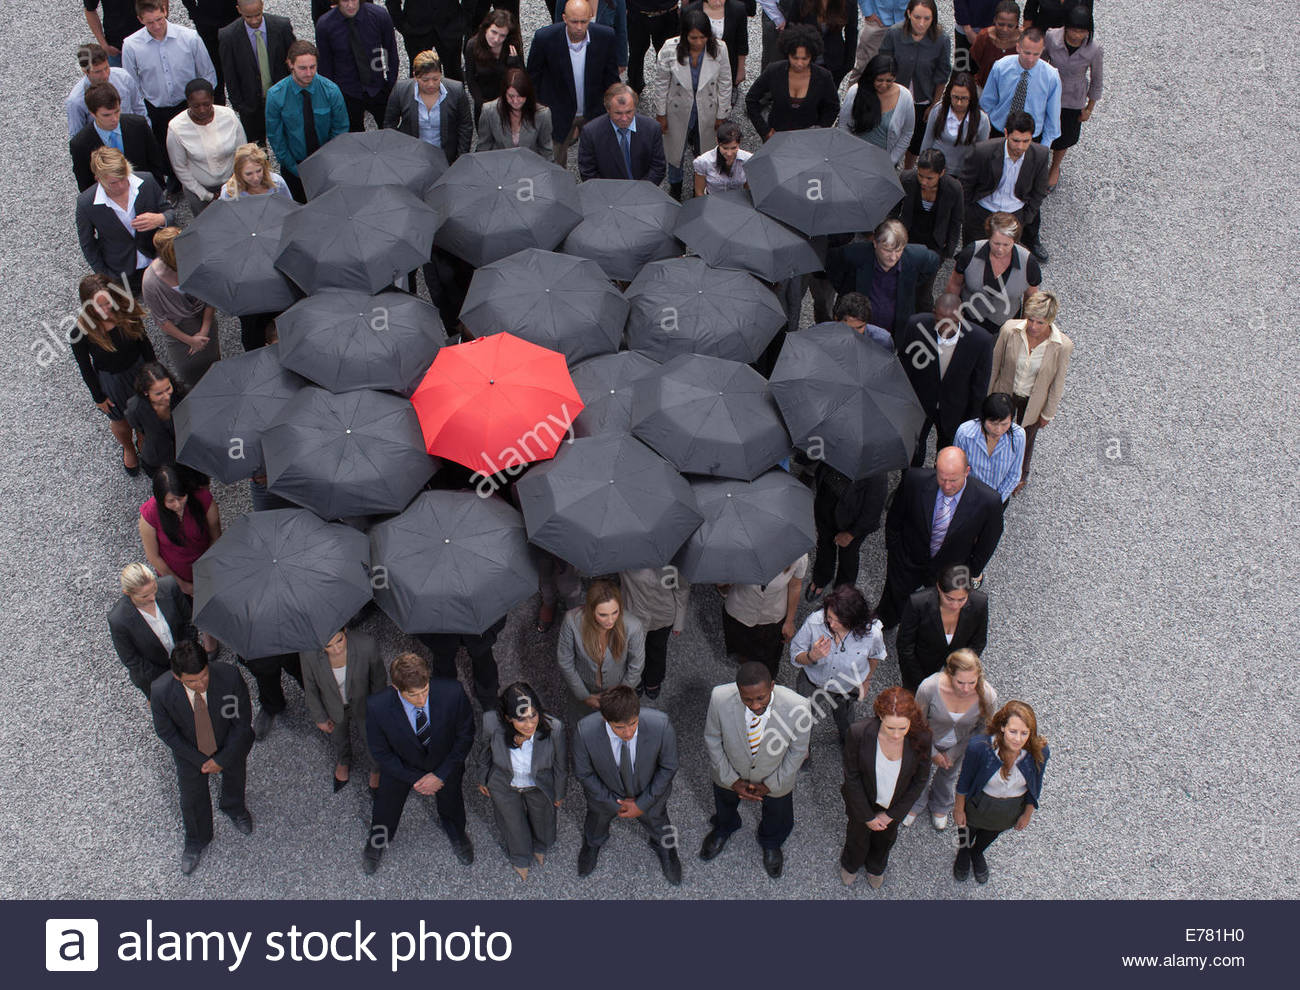 Umbrella at center of circle formed by business people - Stock Image